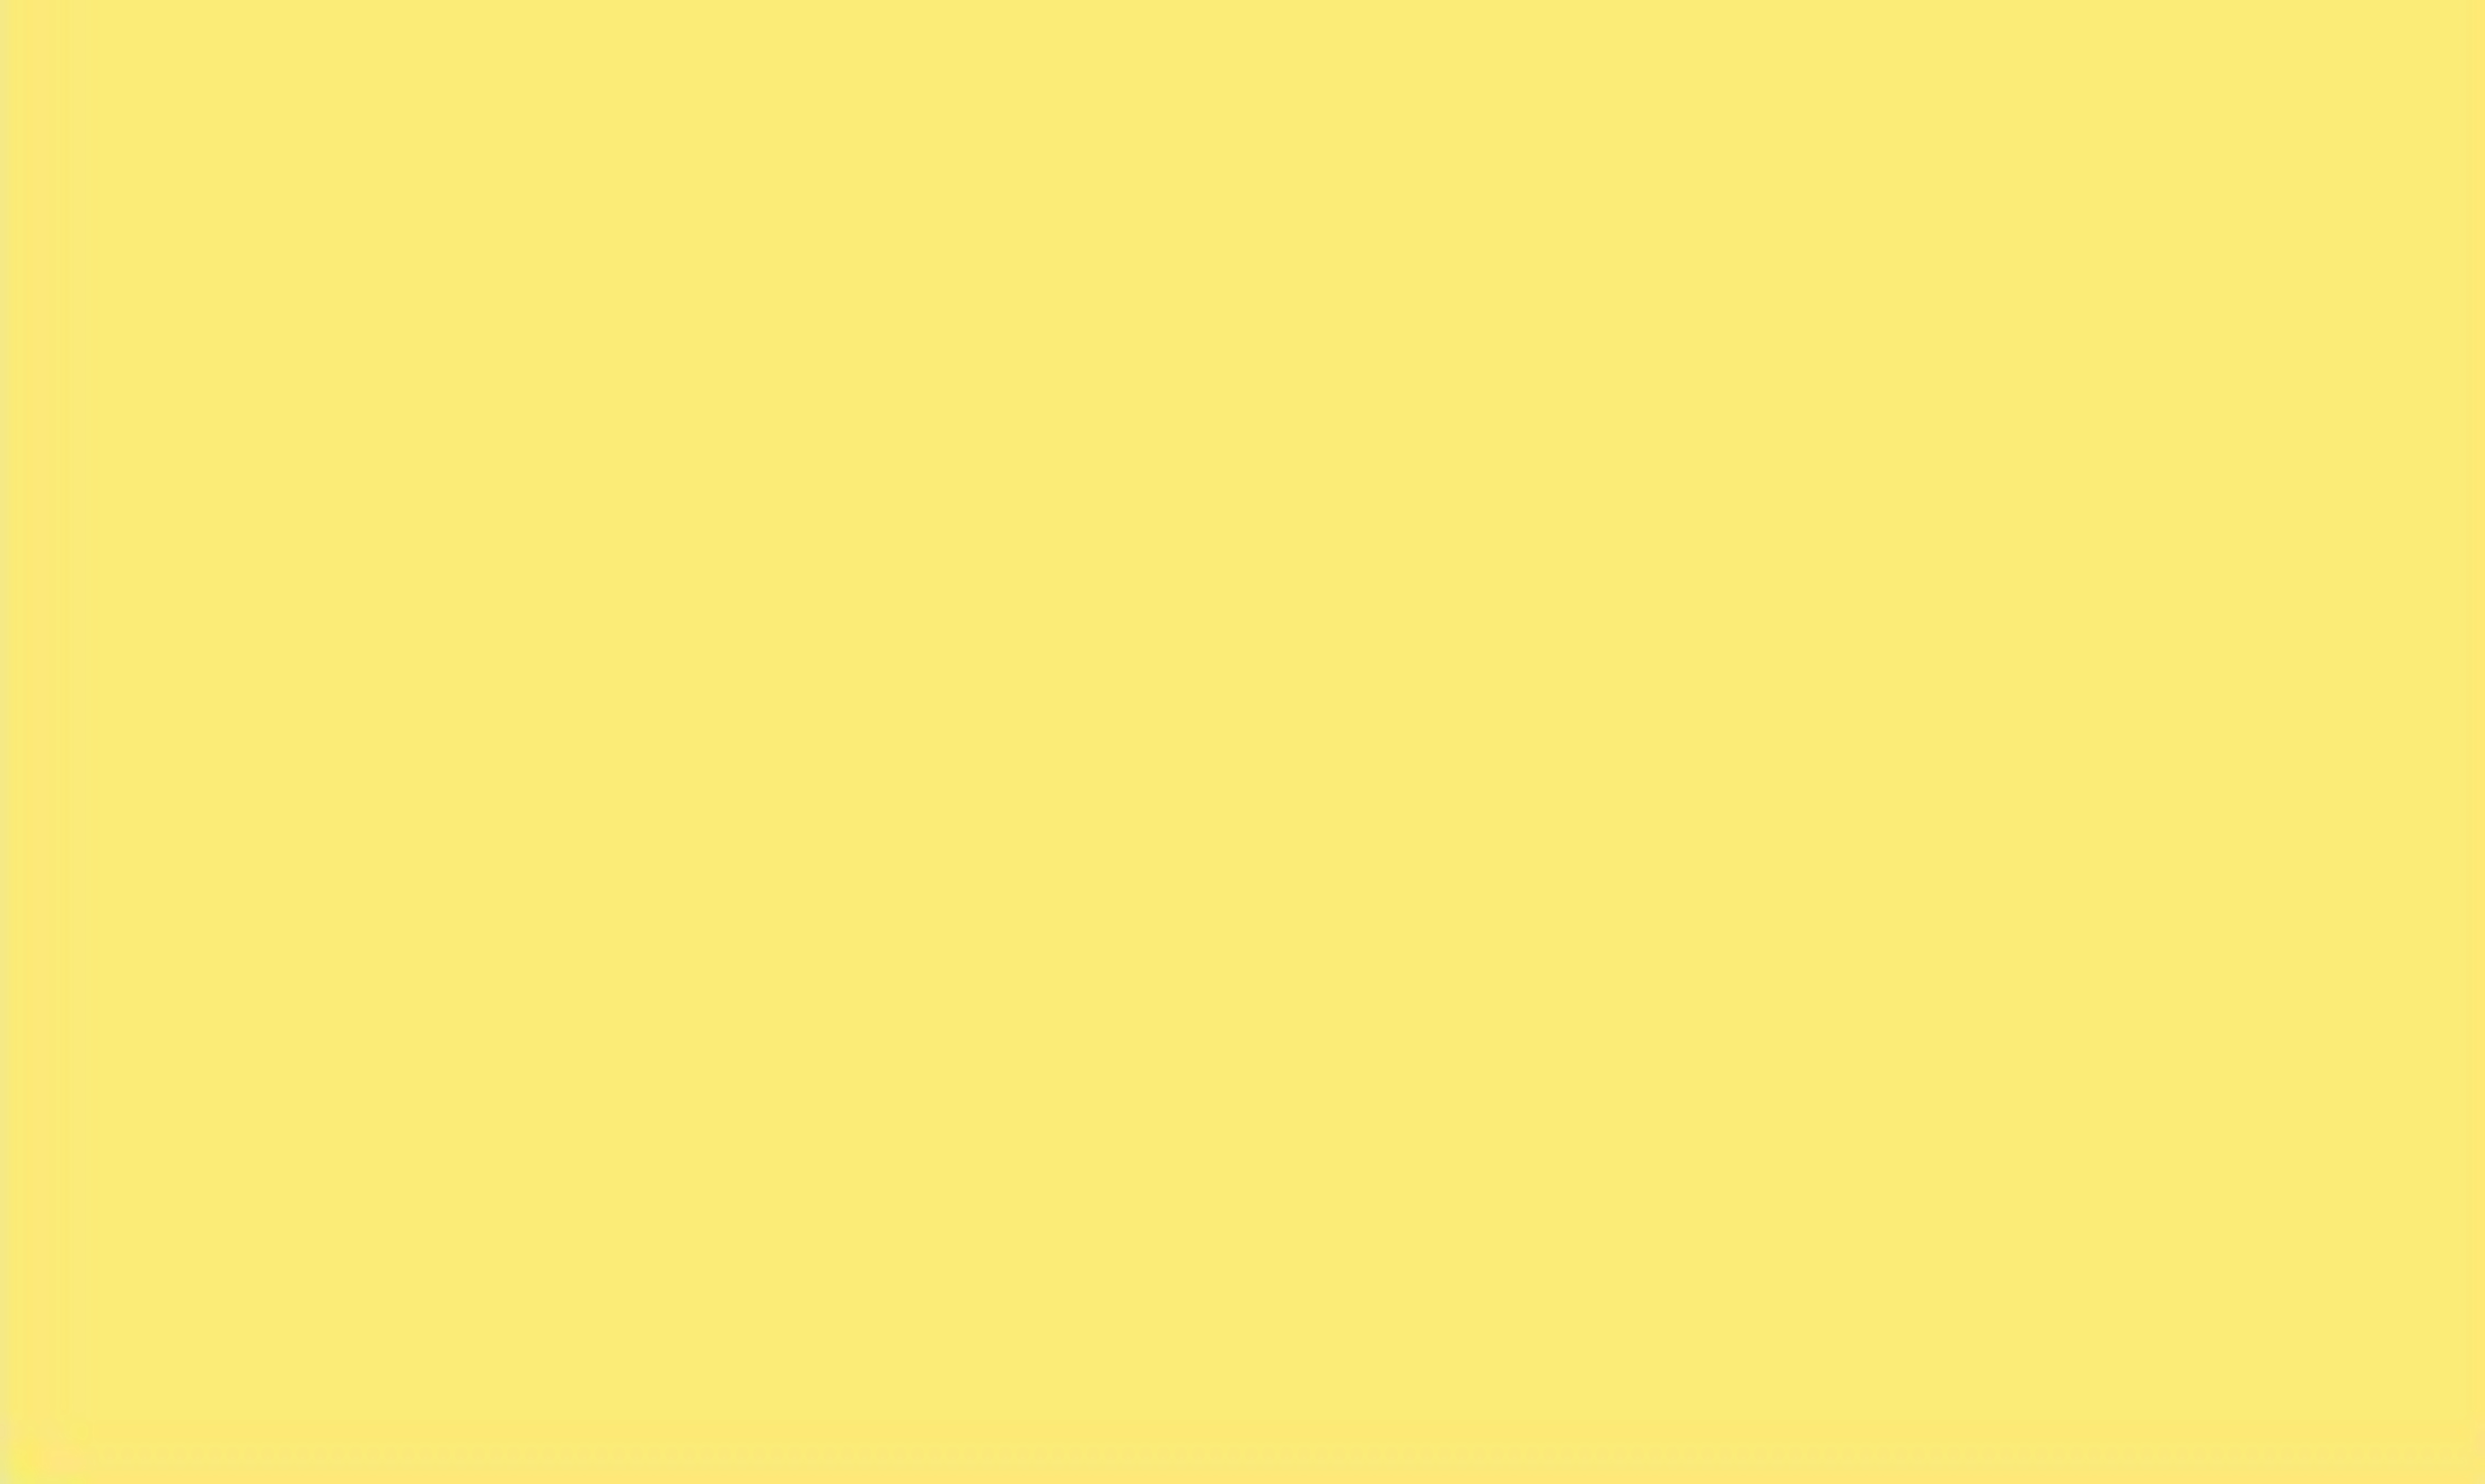 plain_light_yellow_background